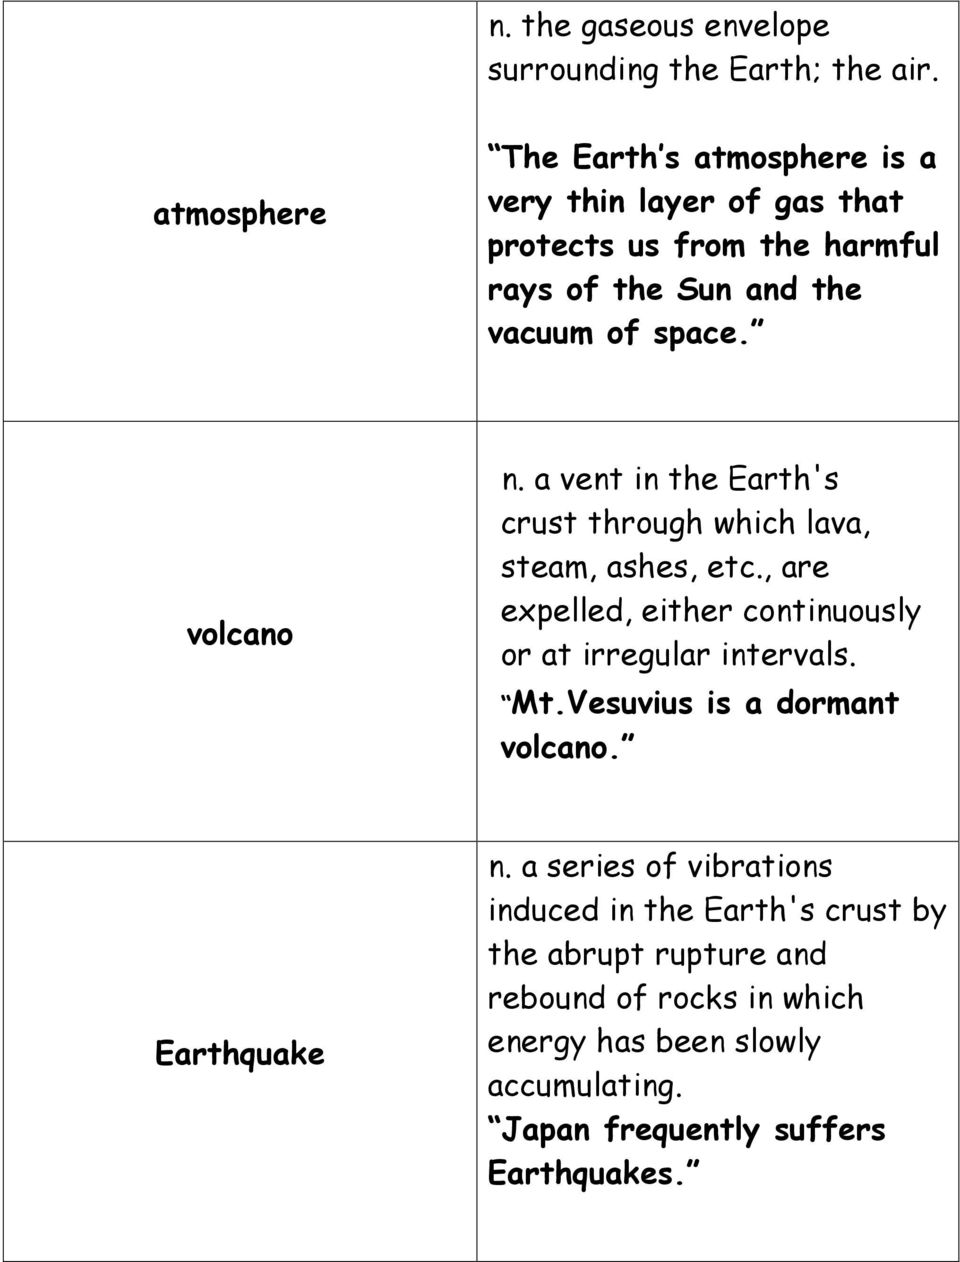 volcano n. a vent in the Earth's crust through which lava, steam, ashes, etc., are expelled, either continuously or at irregular intervals.